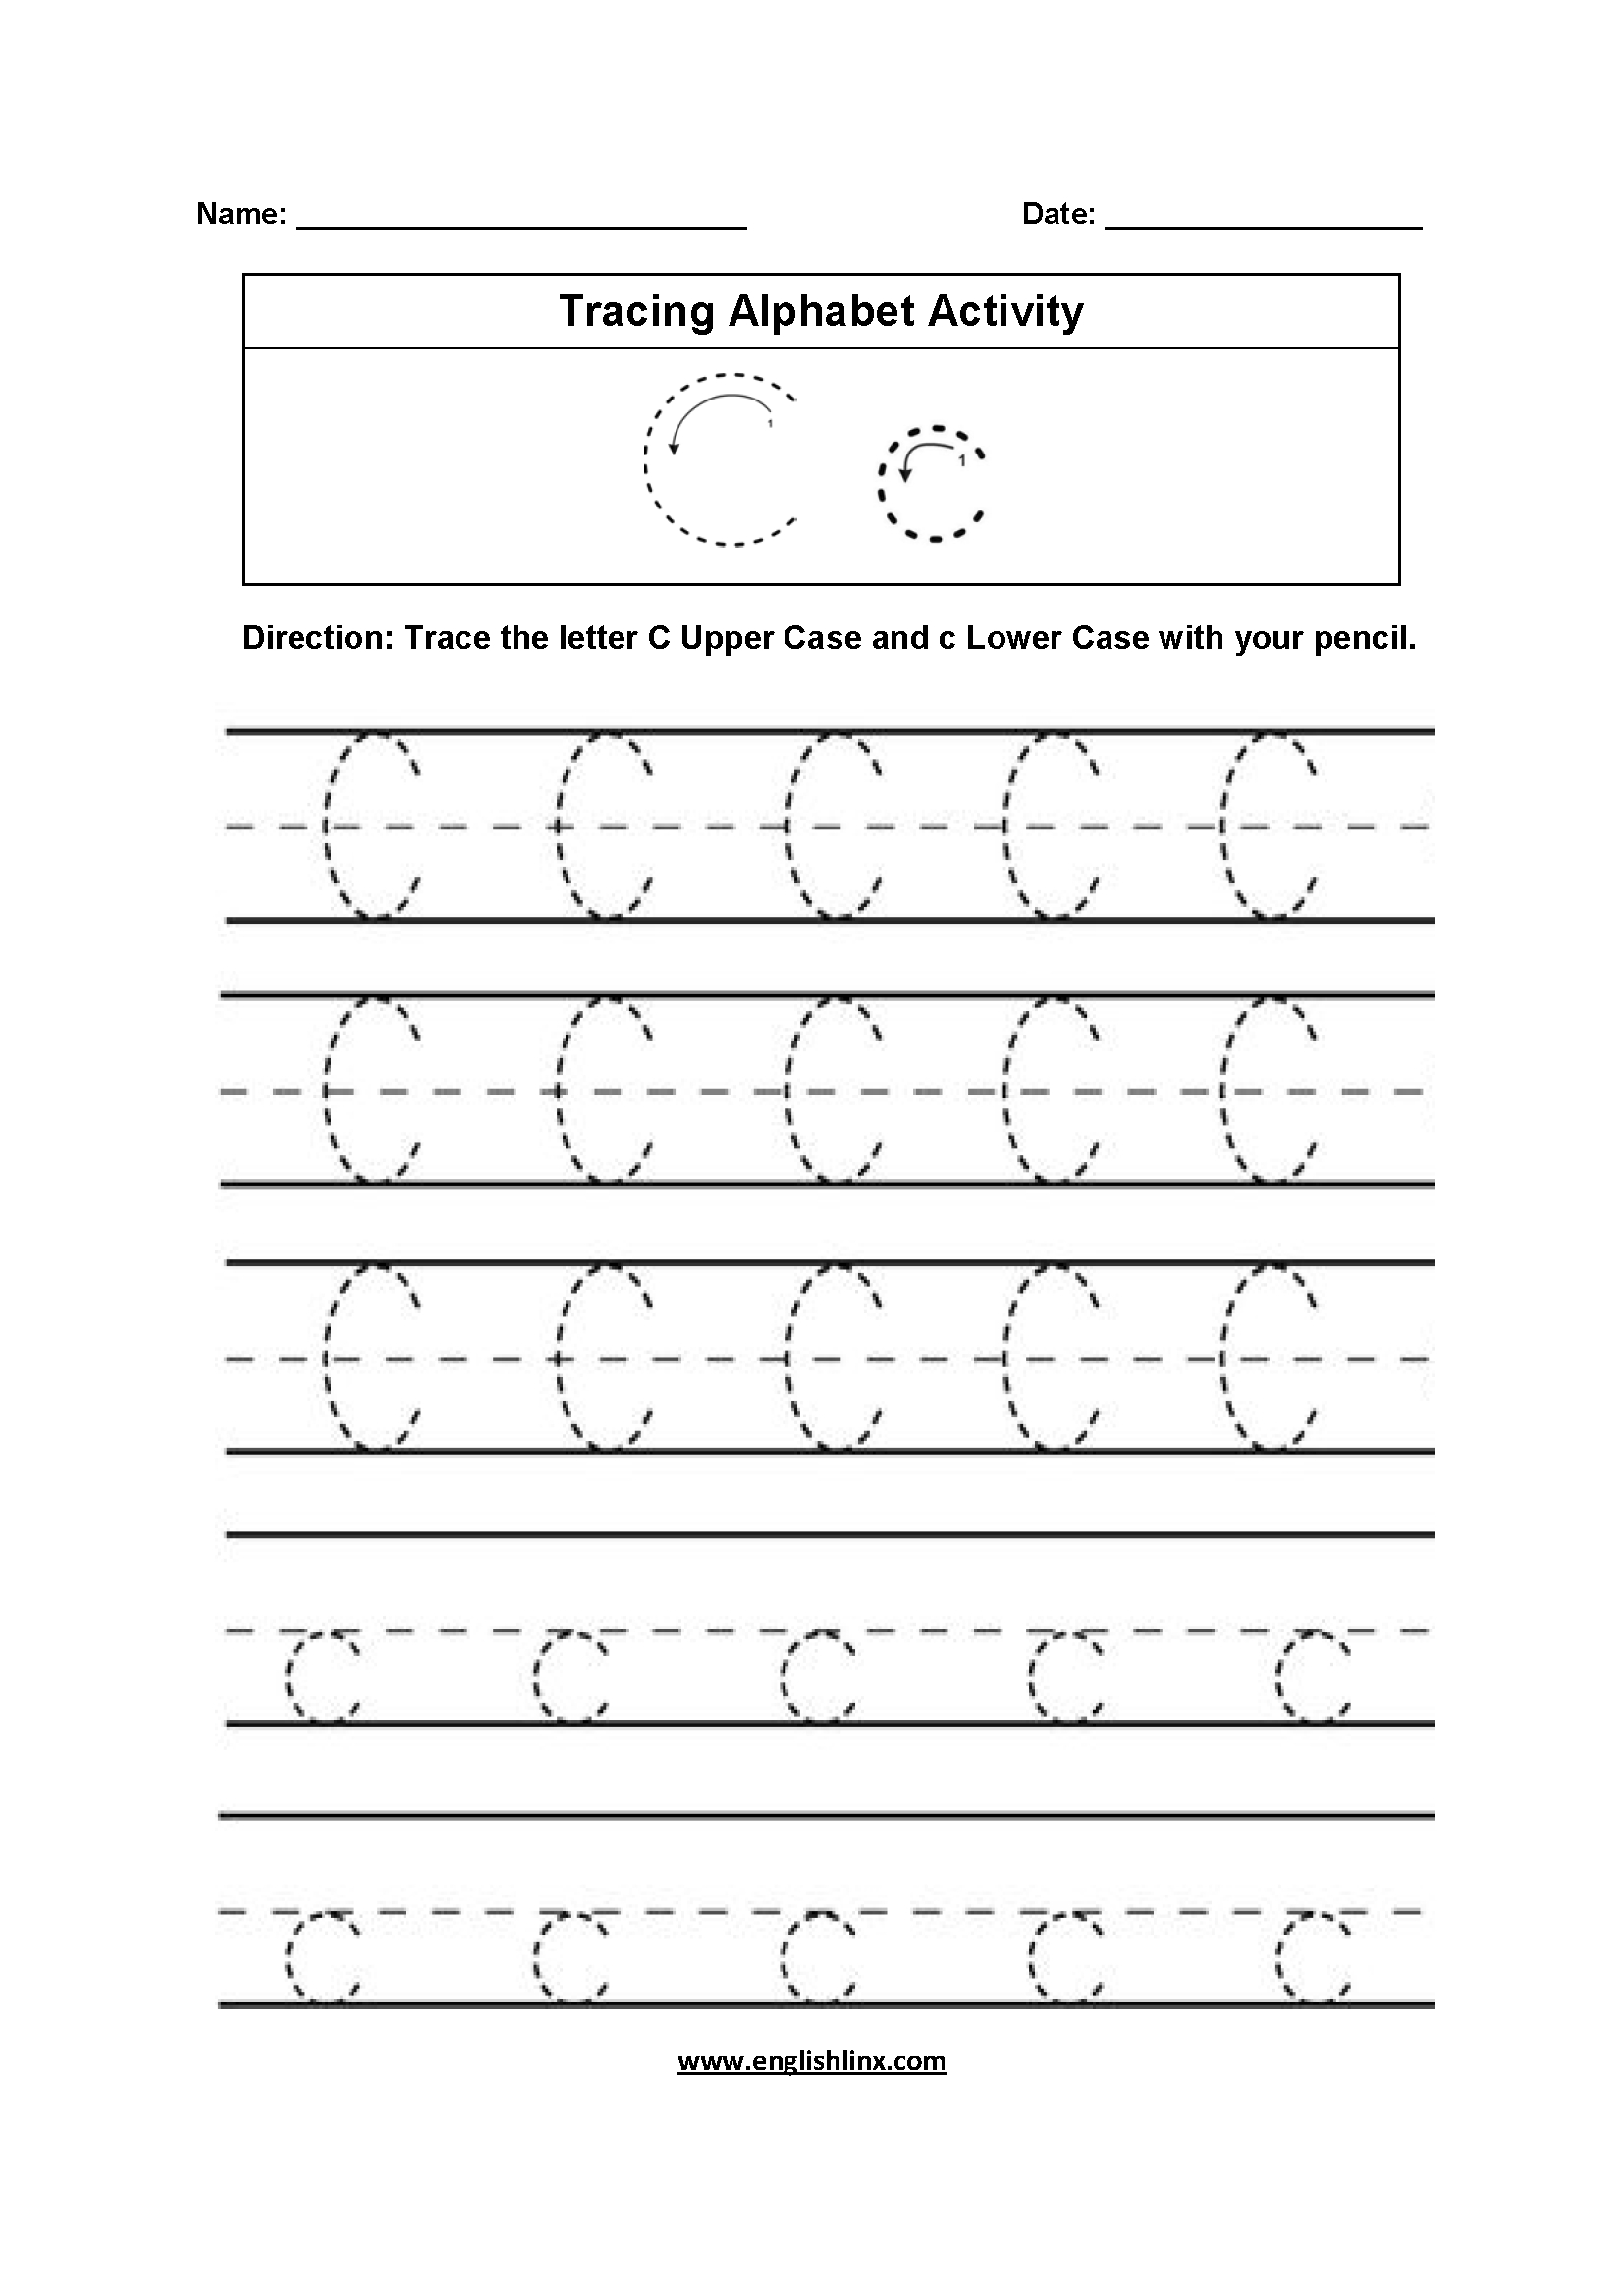 Alphabet Worksheets | Tracing Alphabet Worksheets for Tracing Letters Of The Alphabet Worksheets